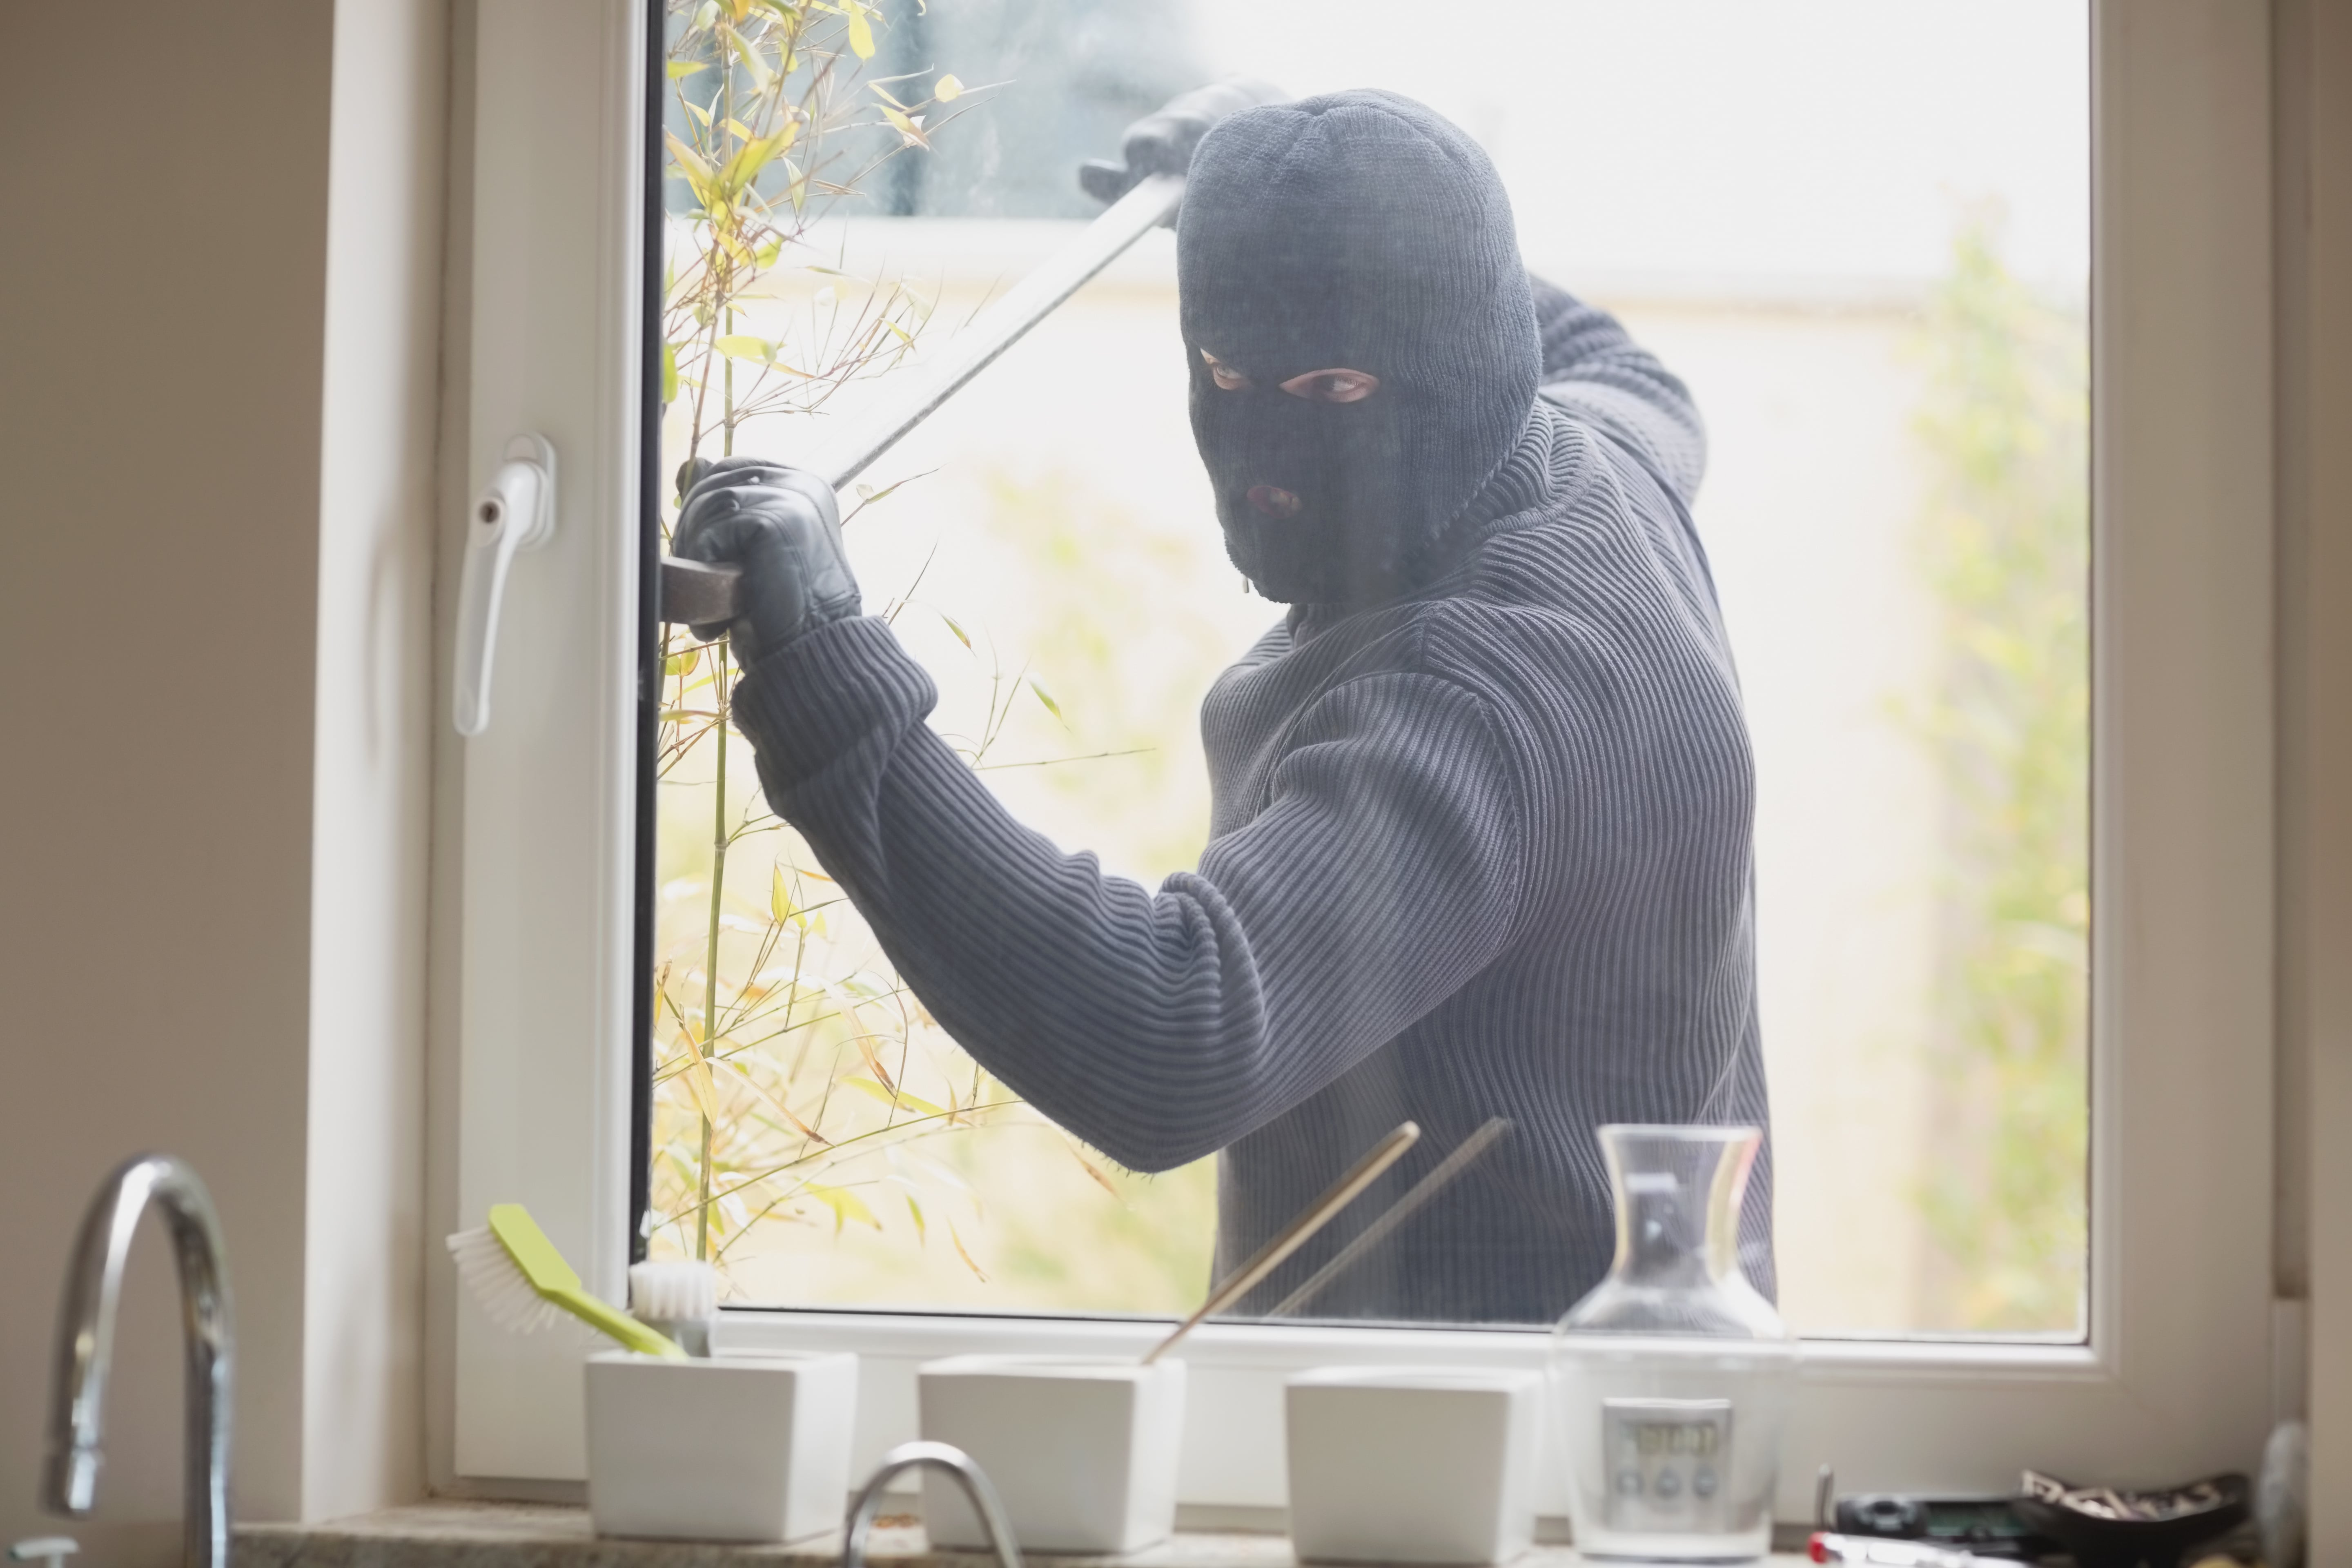 robber breaking into home without security film